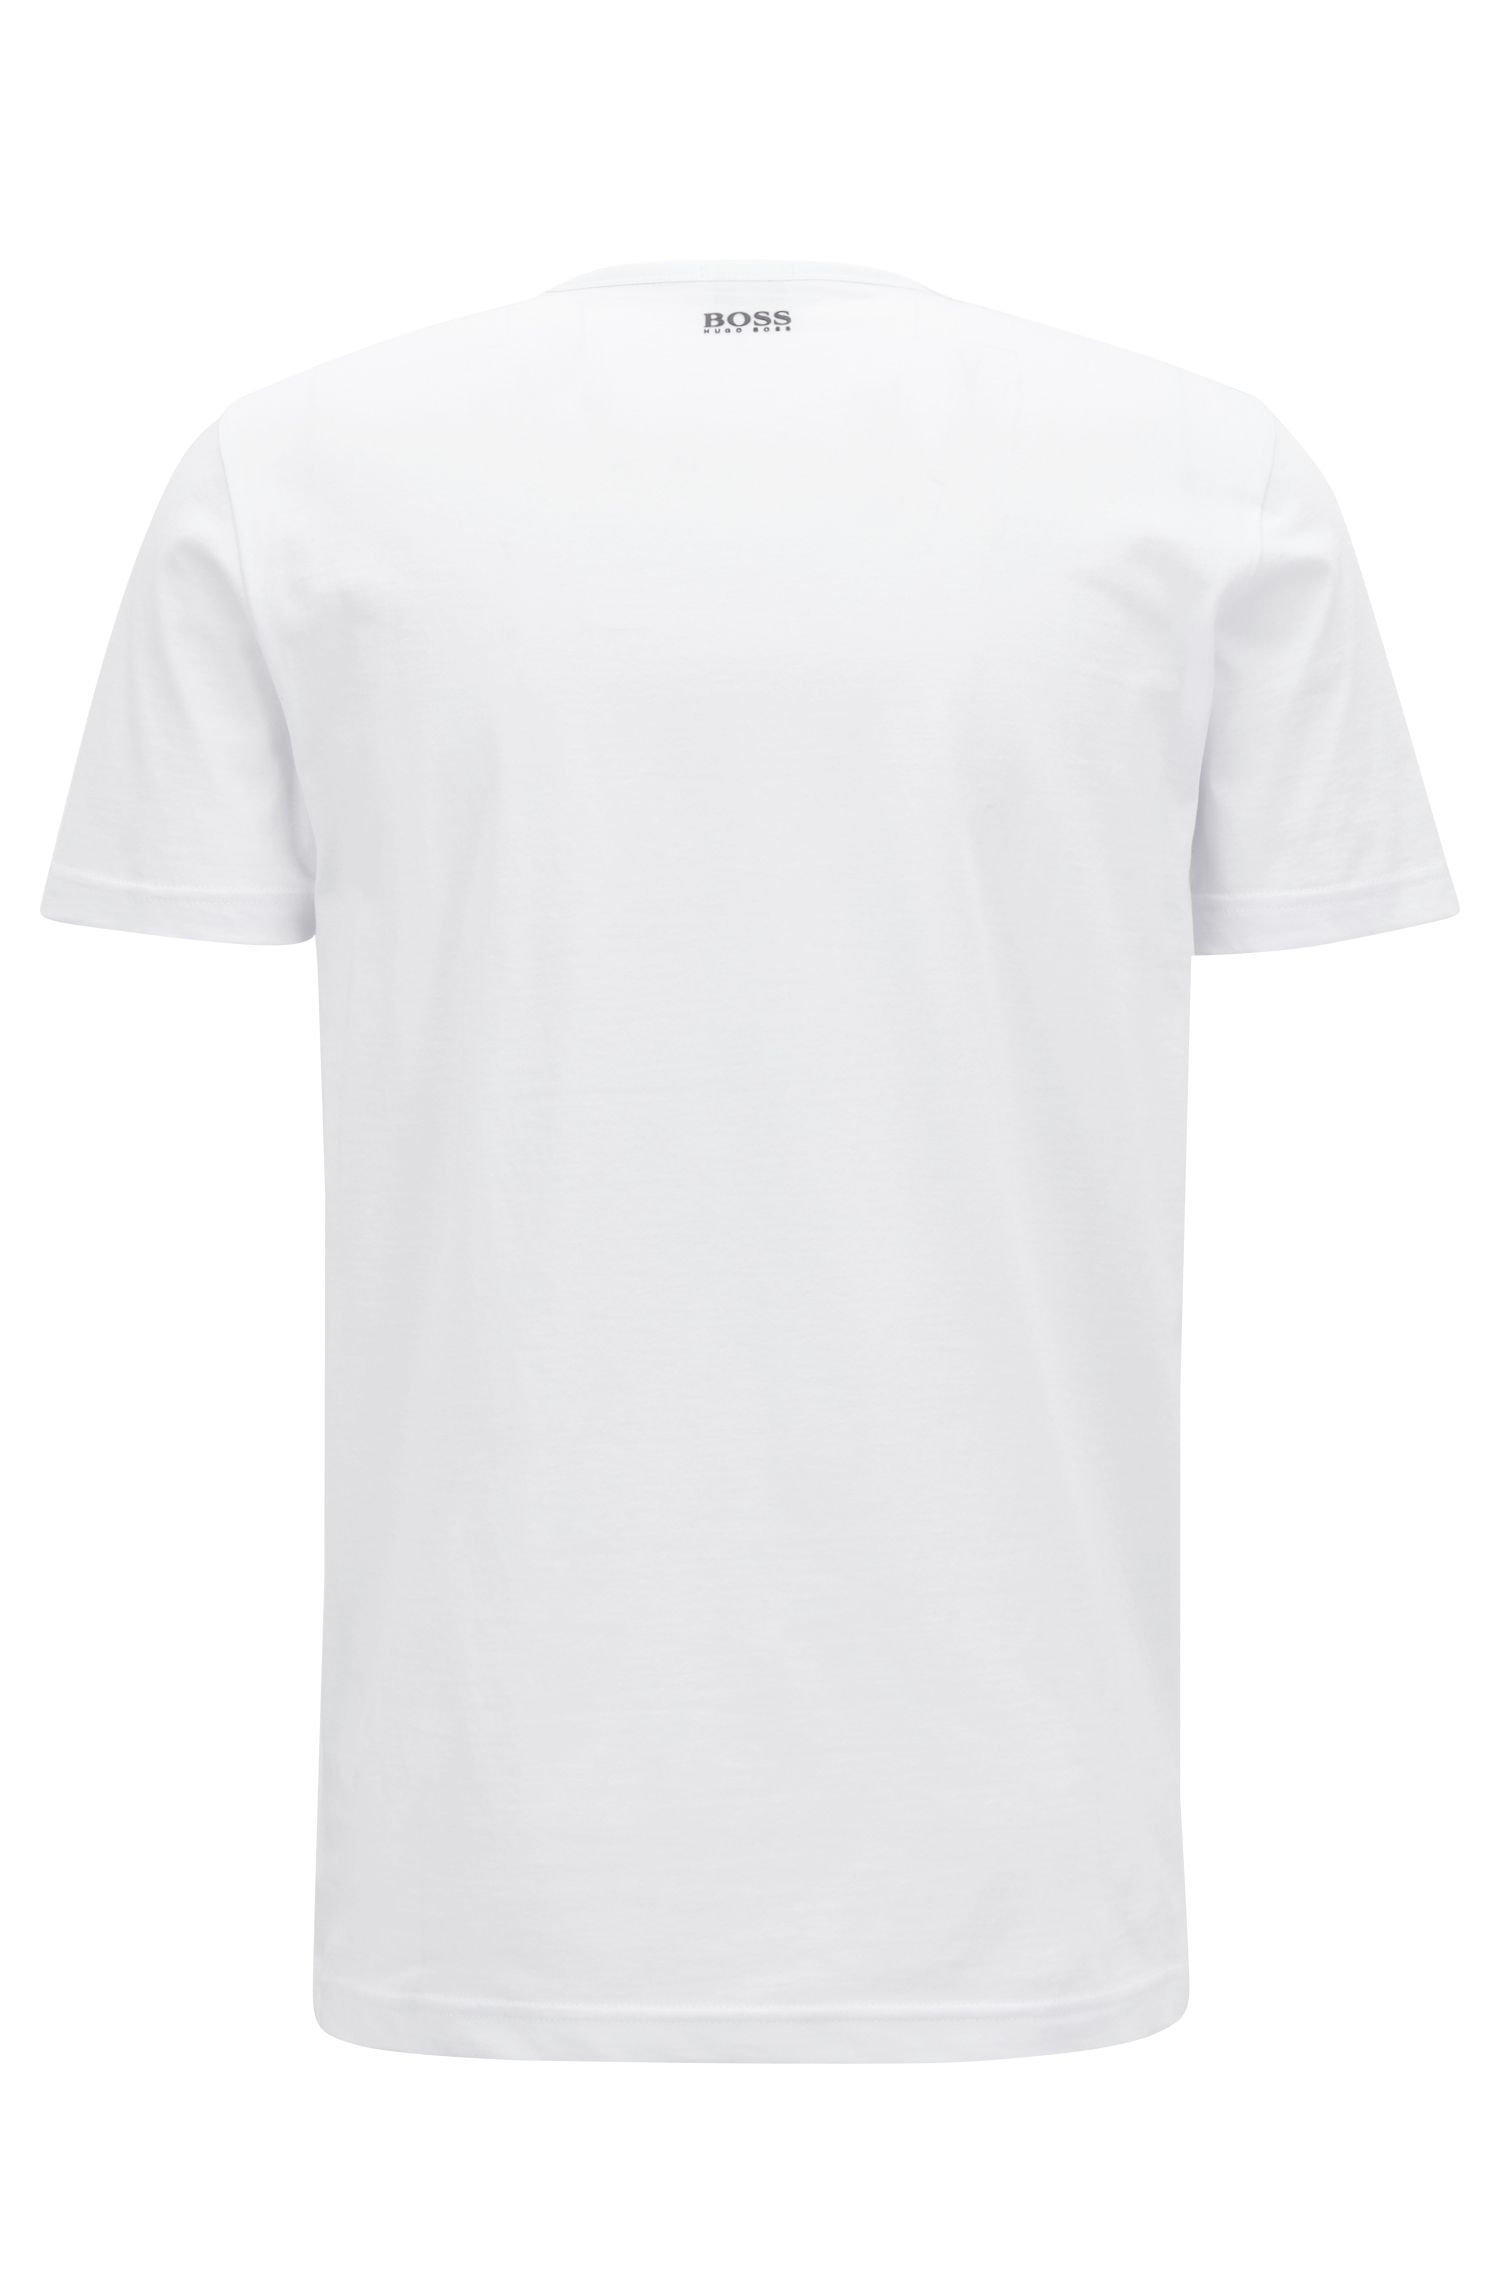 Crew-neck T-shirt with multi-colored logo print, White